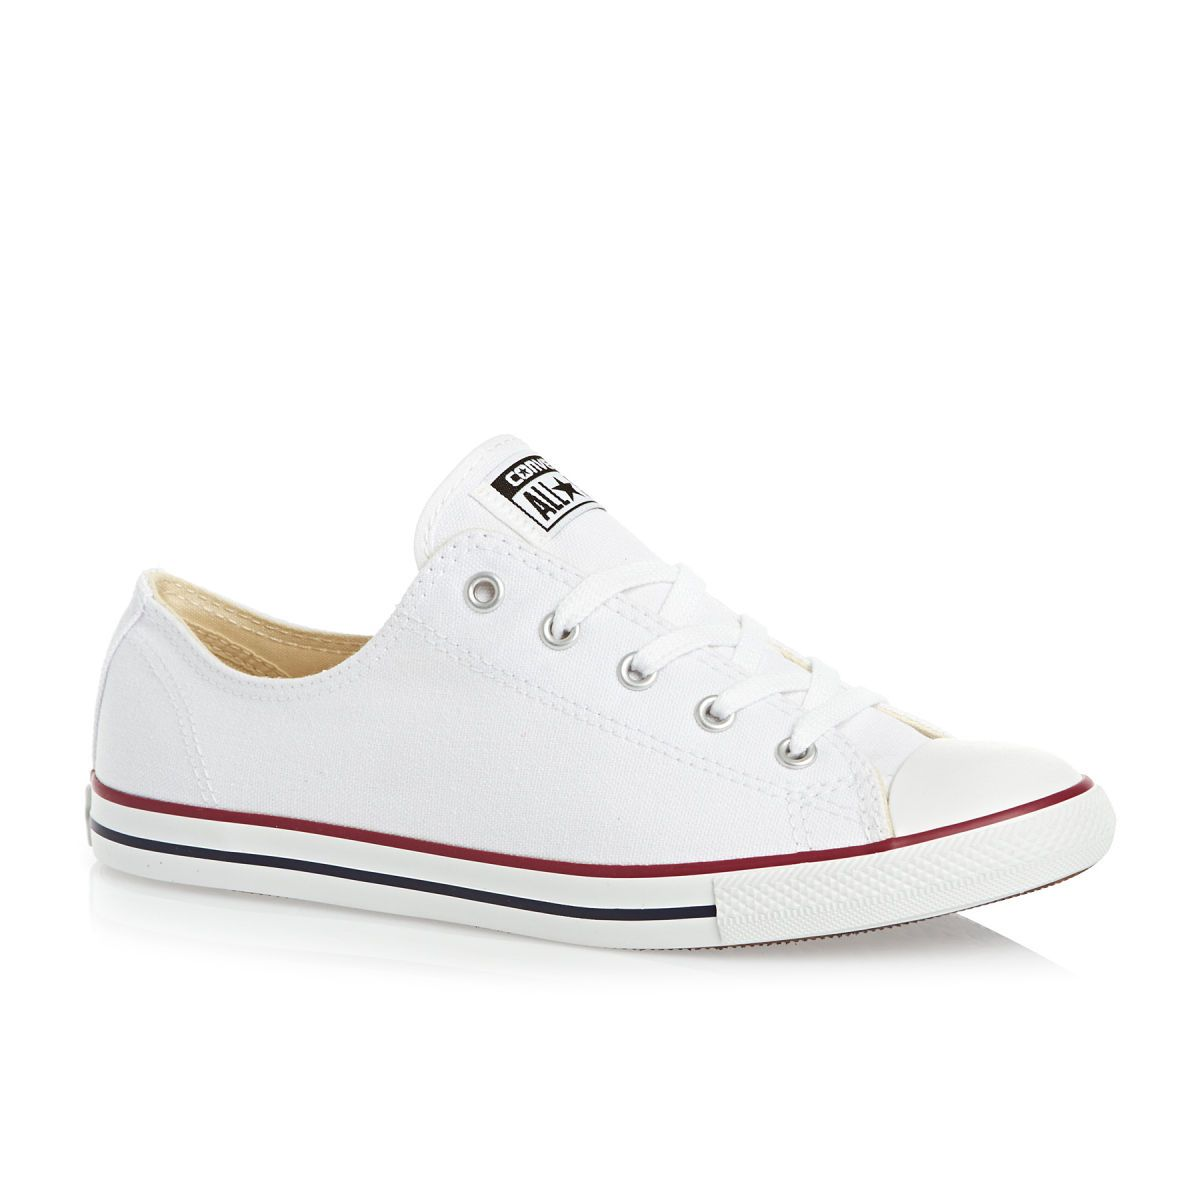 Converse Shoes - Converse Chuck Taylor All Star Dainty Shoes - White